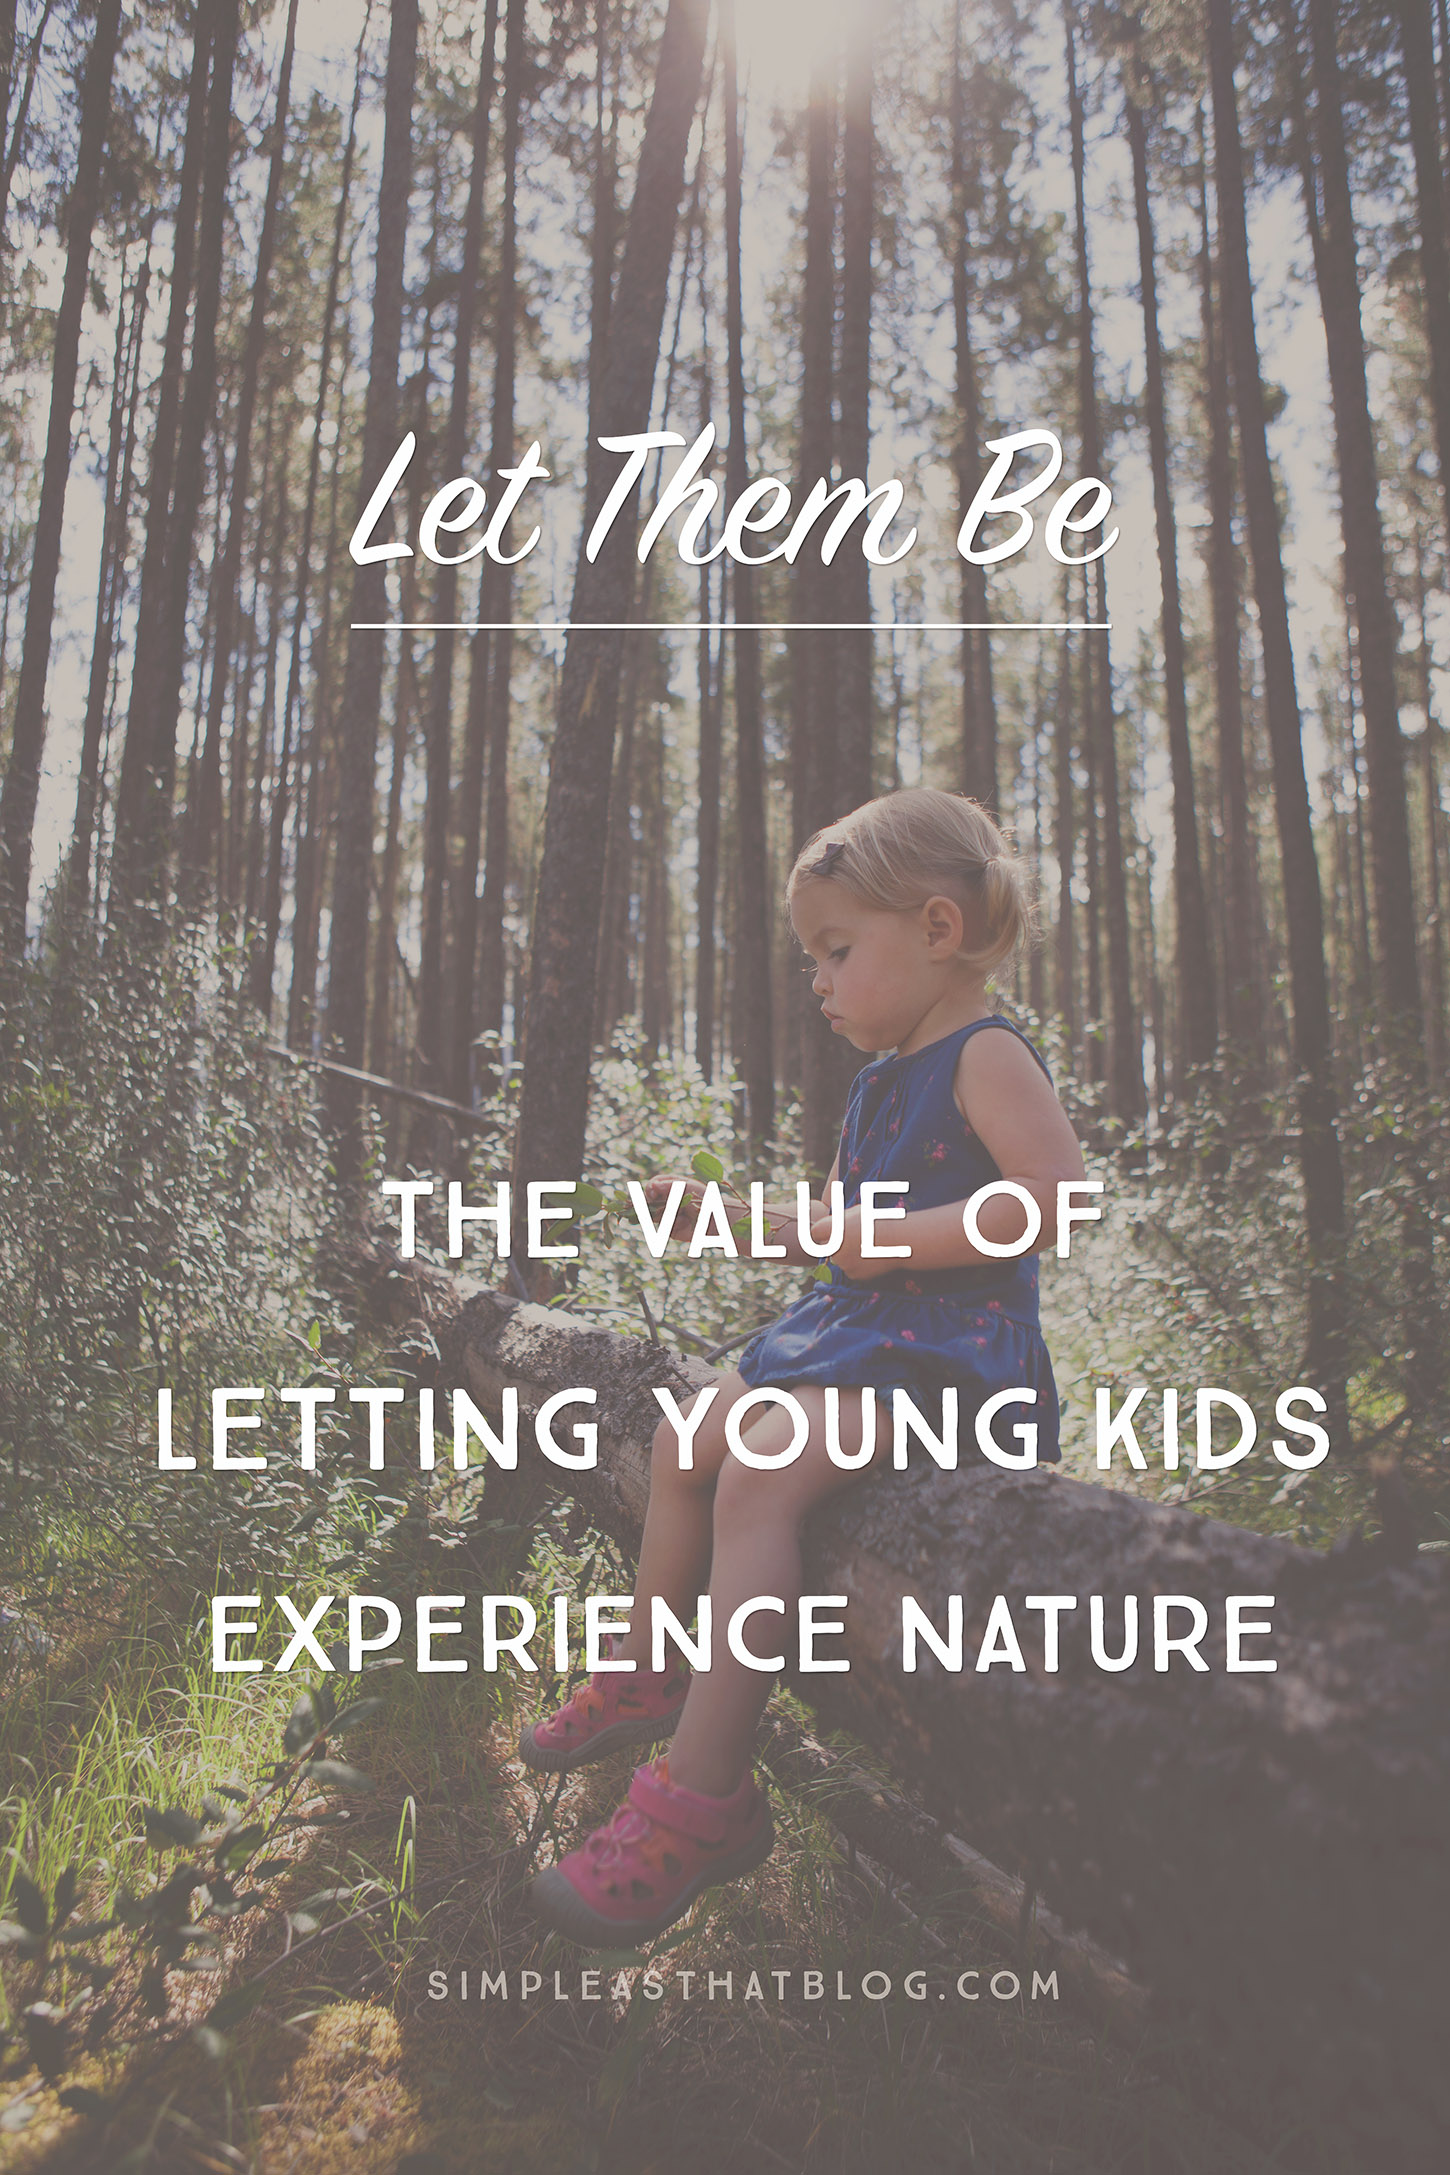 Have you ever planned an outdoor family adventure but hesitated because one of your kids felt too young? 6 tips to help you get even your youngest into nature!